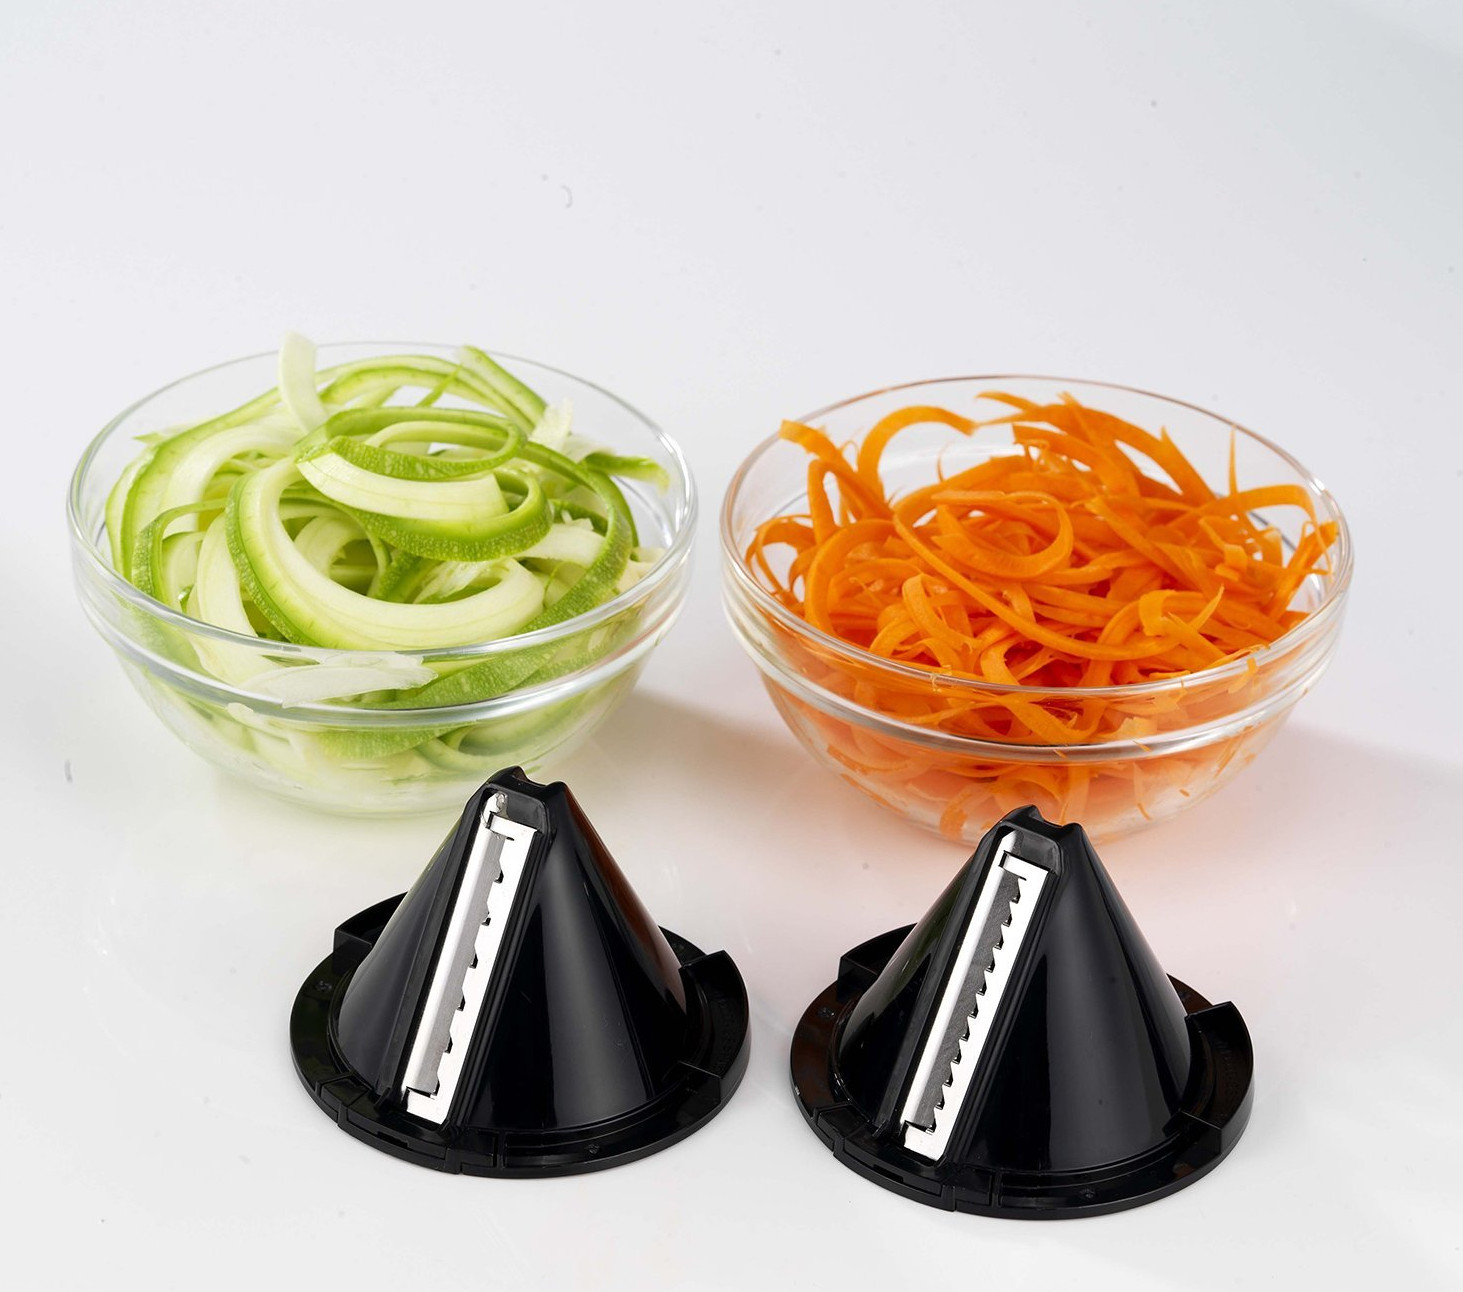 Some of the veg produced by the Morphy Richards 432020 Electric Spiralizer